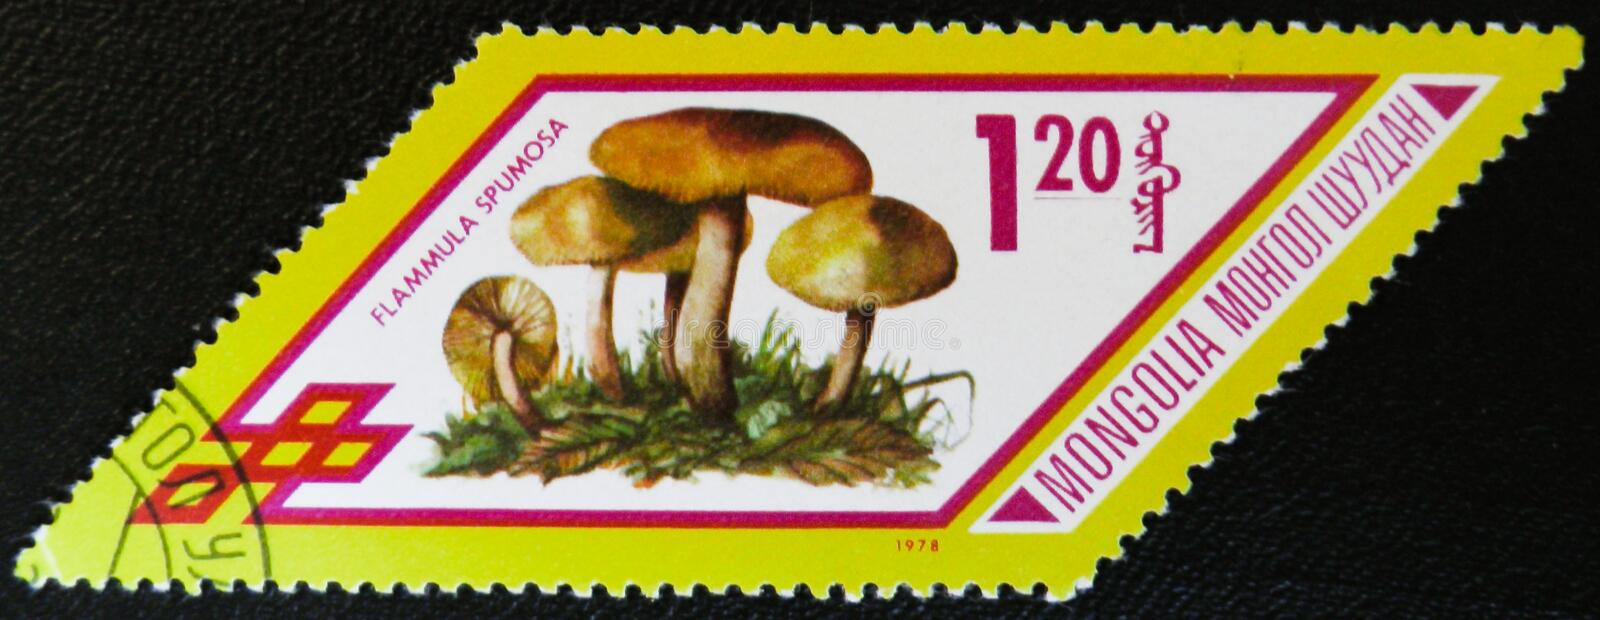 Flammula Spumosa mushrooms, series, circa 1978. MOSCOW, RUSSIA - JANUARY 7, 2017: A stamp printed in Mongolia shows Flammula Spumosa mushrooms, series, circa stock image